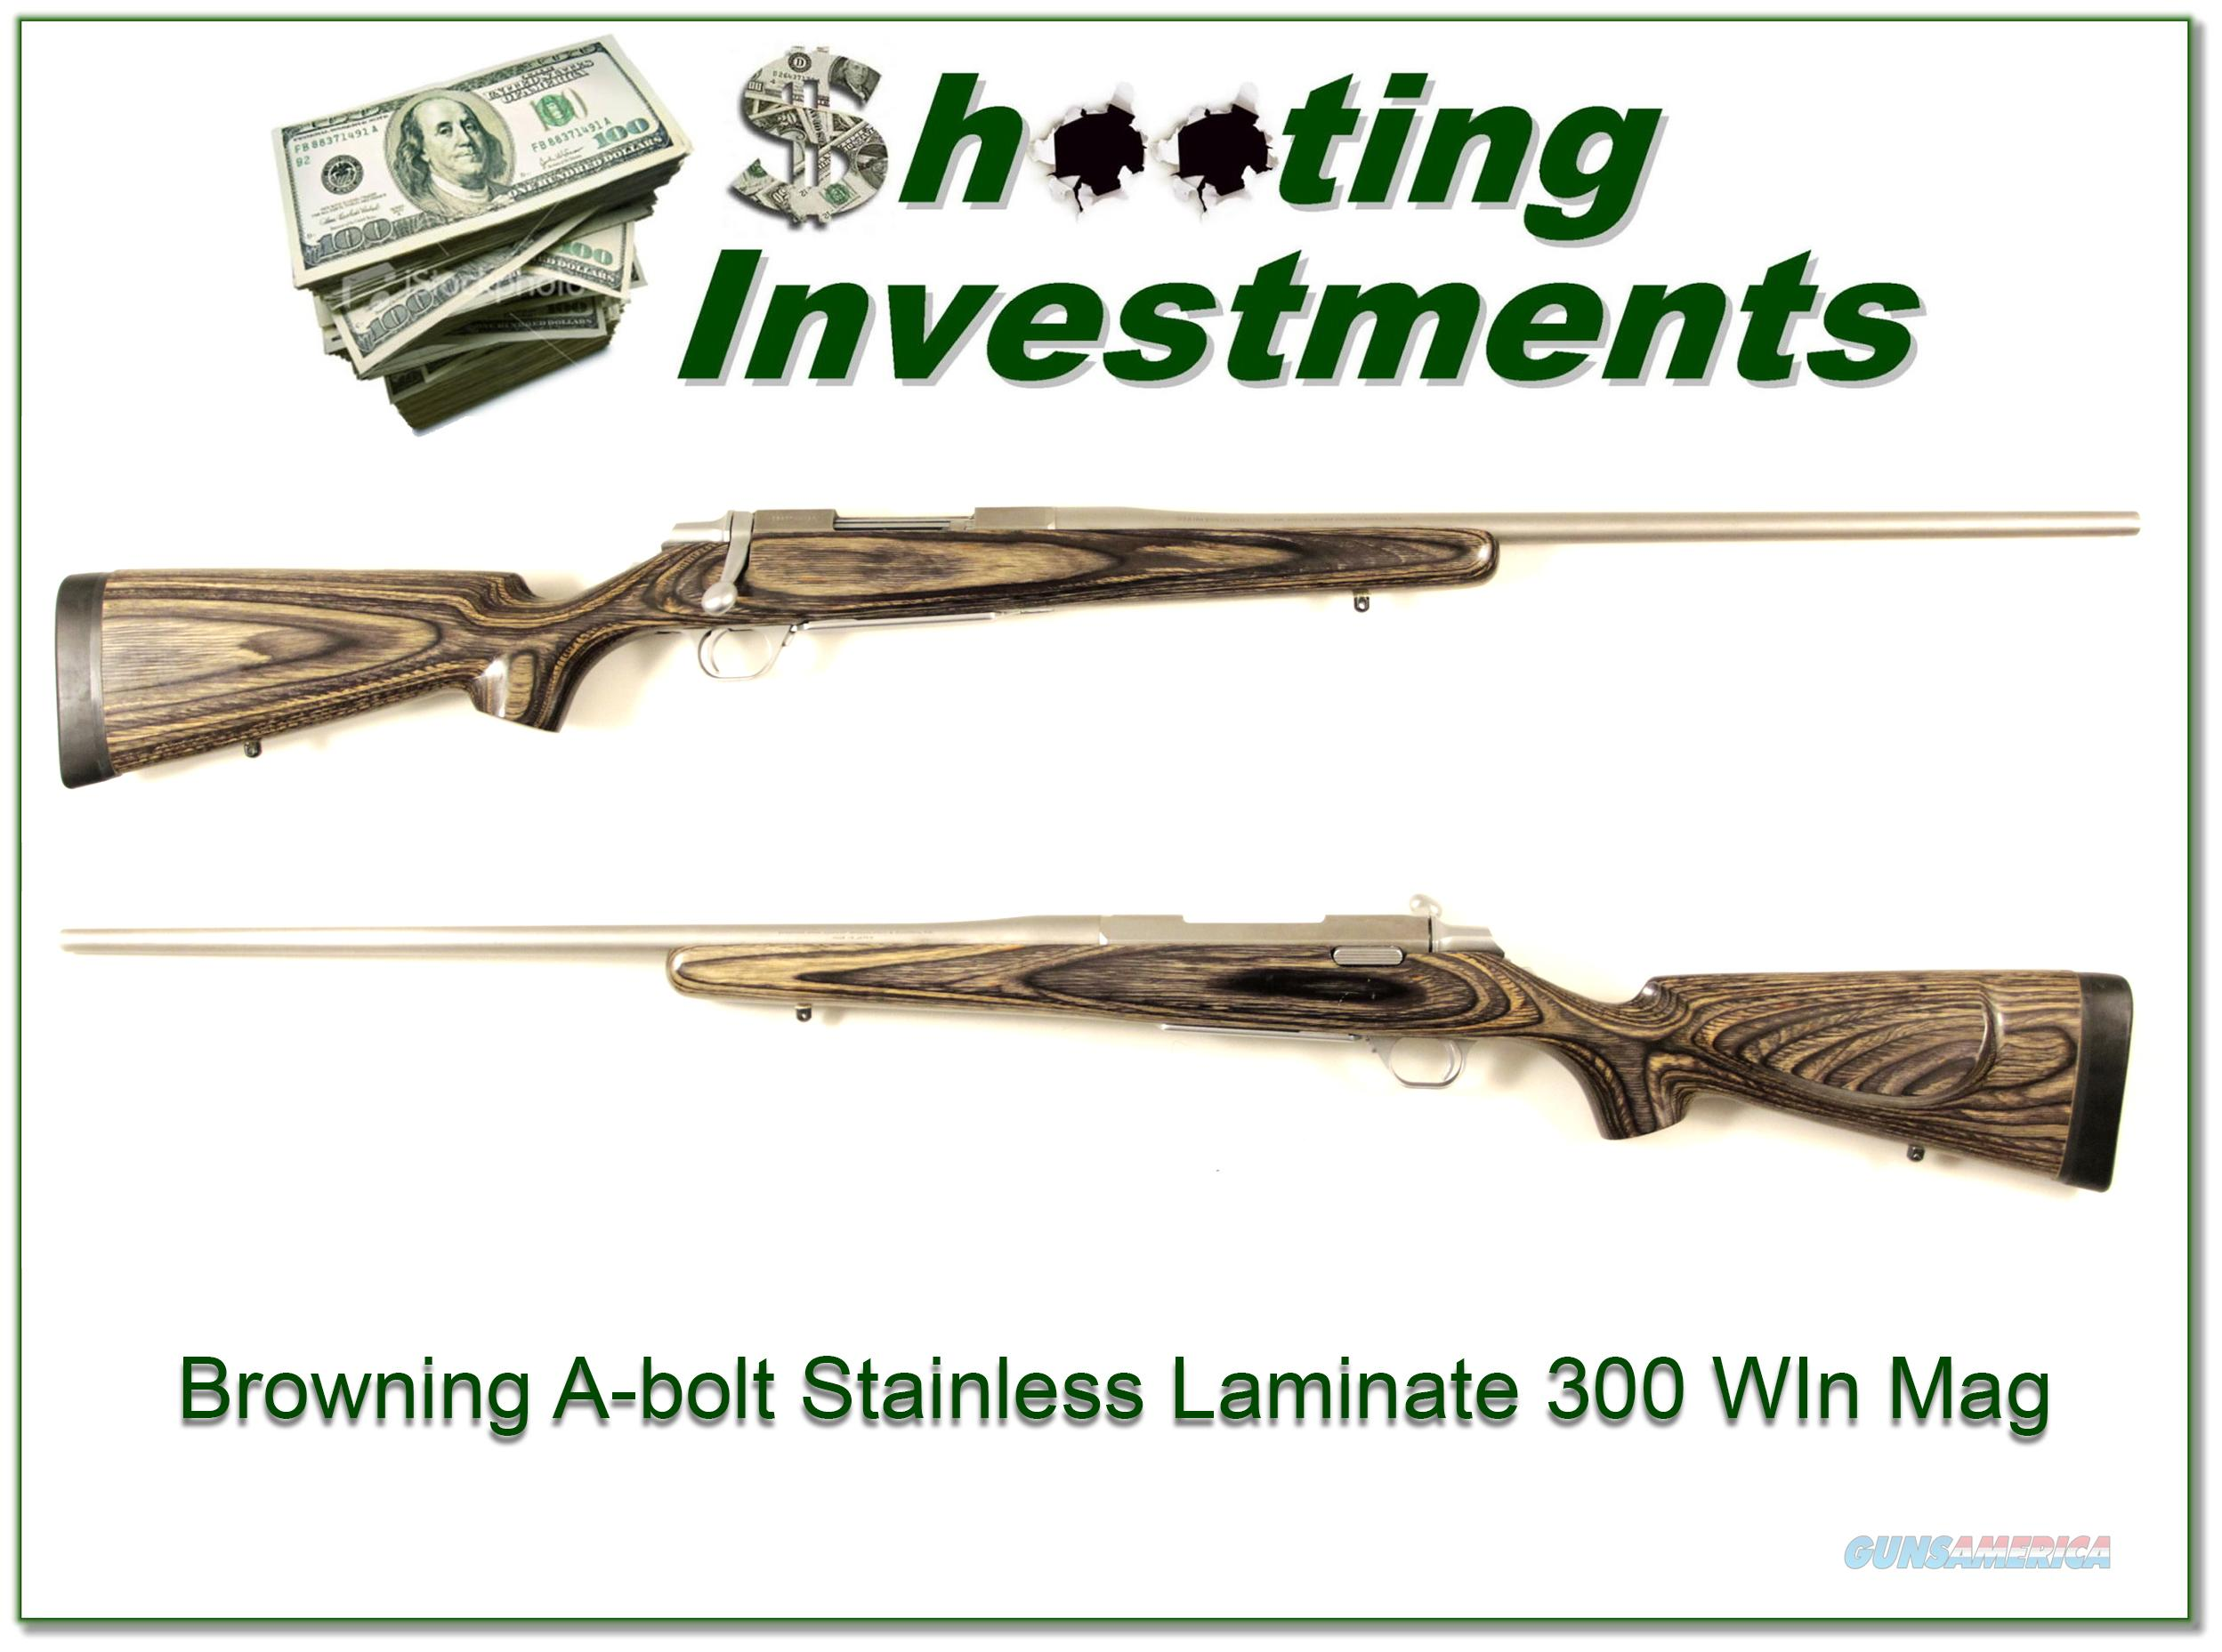 Browning A-bolt Stainless Laminate 300 Win Mag  Guns > Rifles > Browning Rifles > Bolt Action > Hunting > Stainless